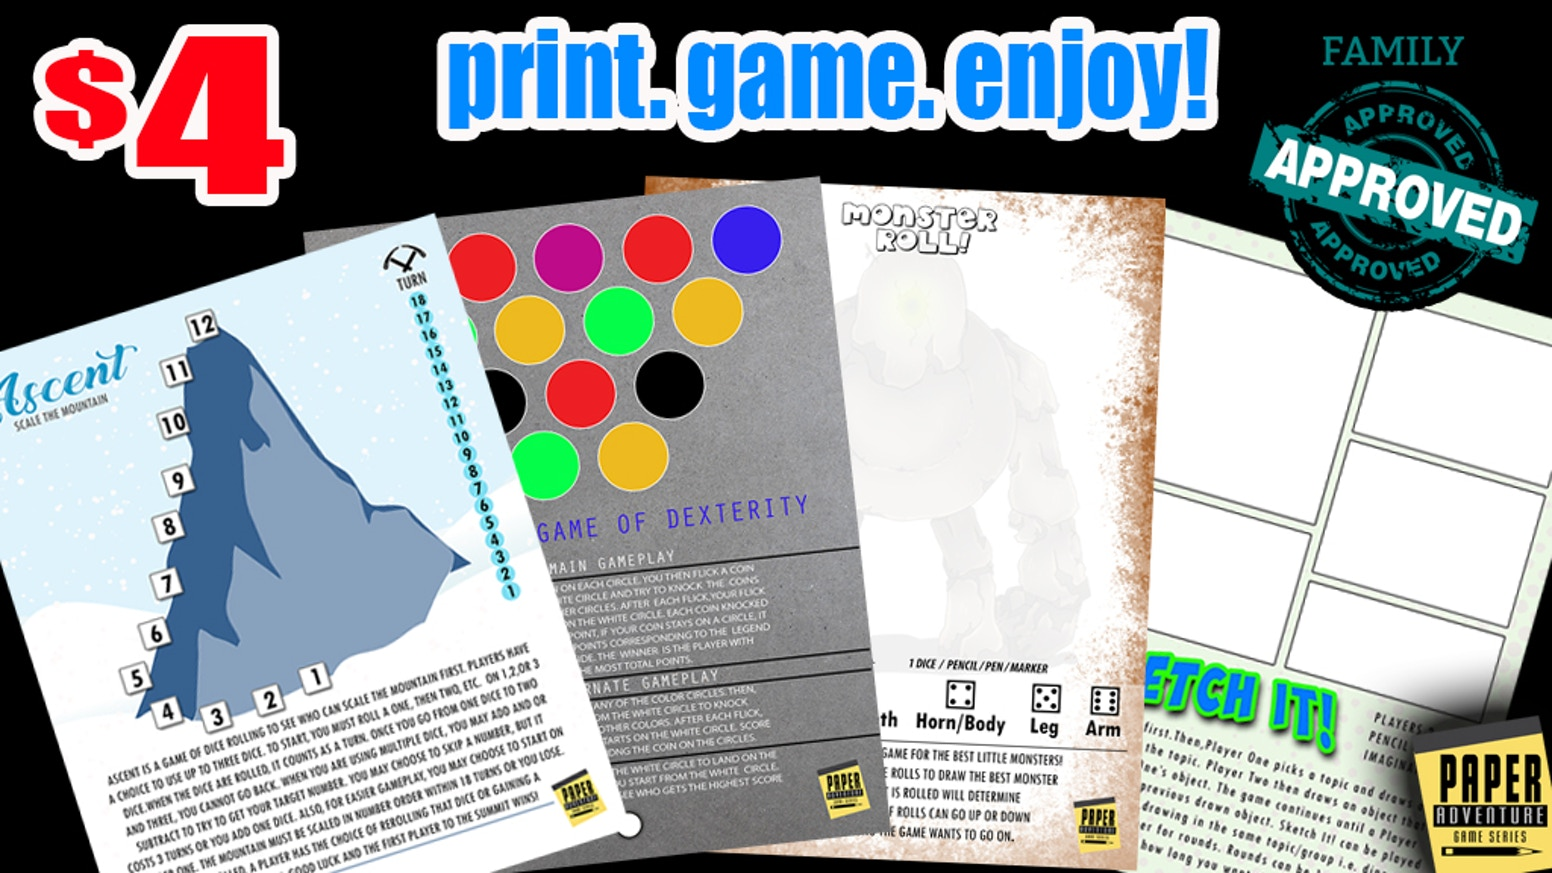 Paper Adventure: A FUN way for the whole family to game! by Argent